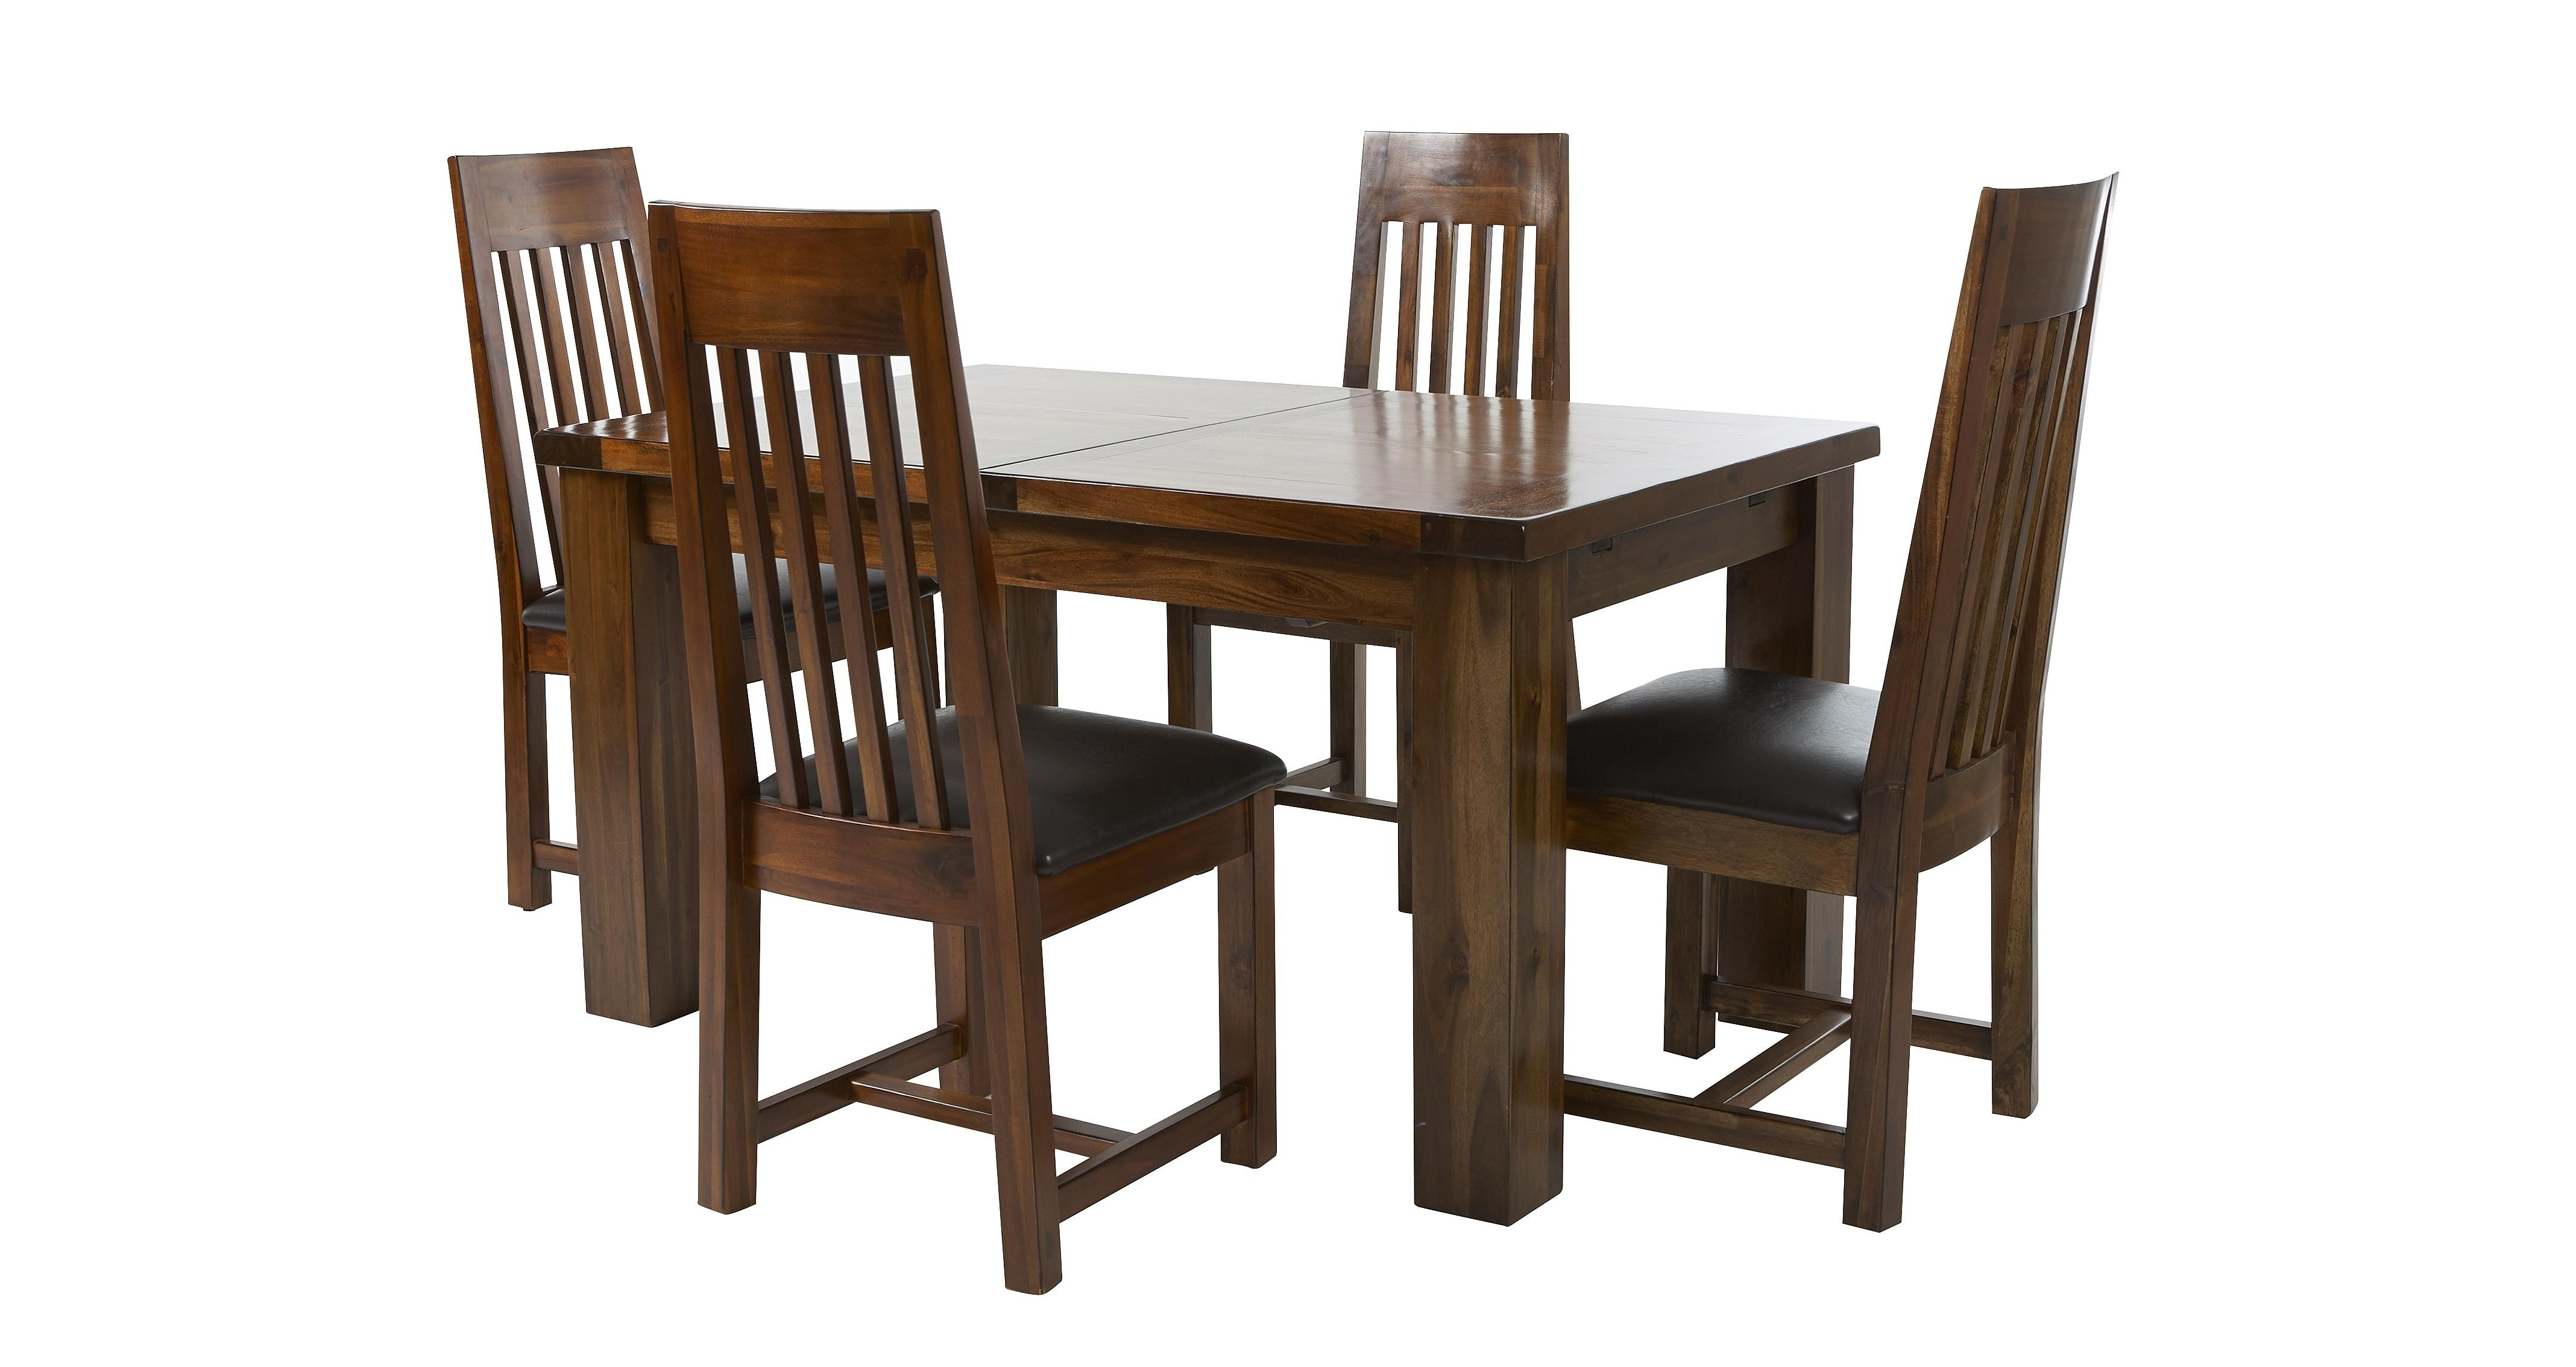 Well Known Extension Dining Table Seats 14 Best Of Shiraz Small Extending Intended For Extending Dining Tables With 14 Seats (View 12 of 25)